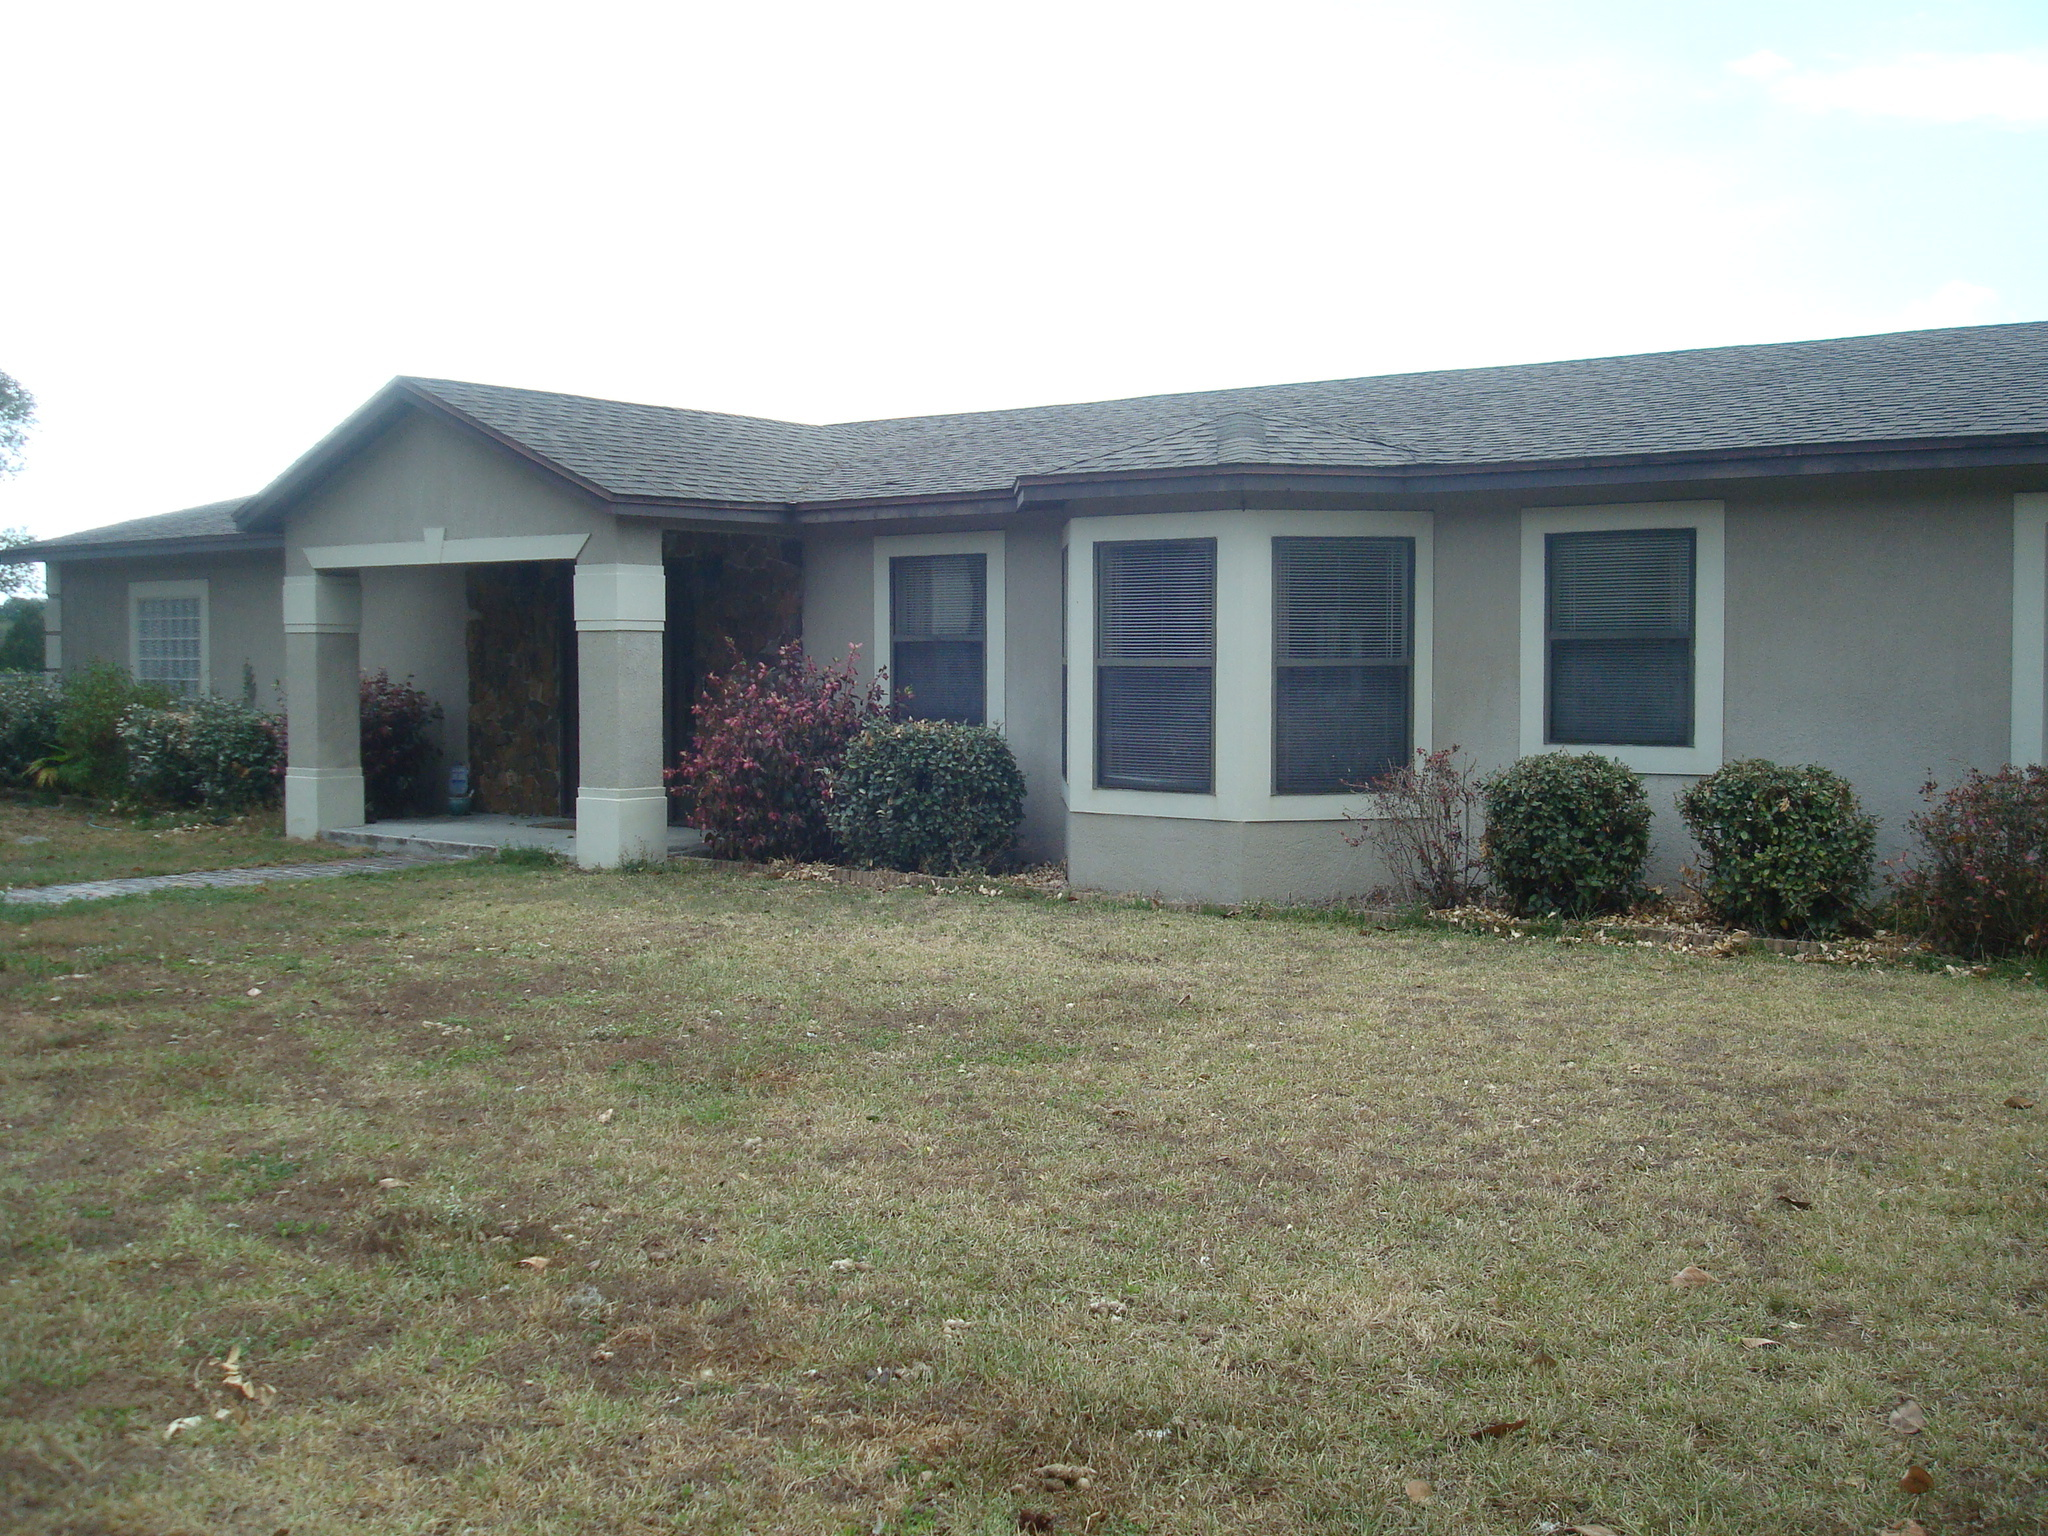 Just Sold In Clermont Flmissed Opportunity For Buyers